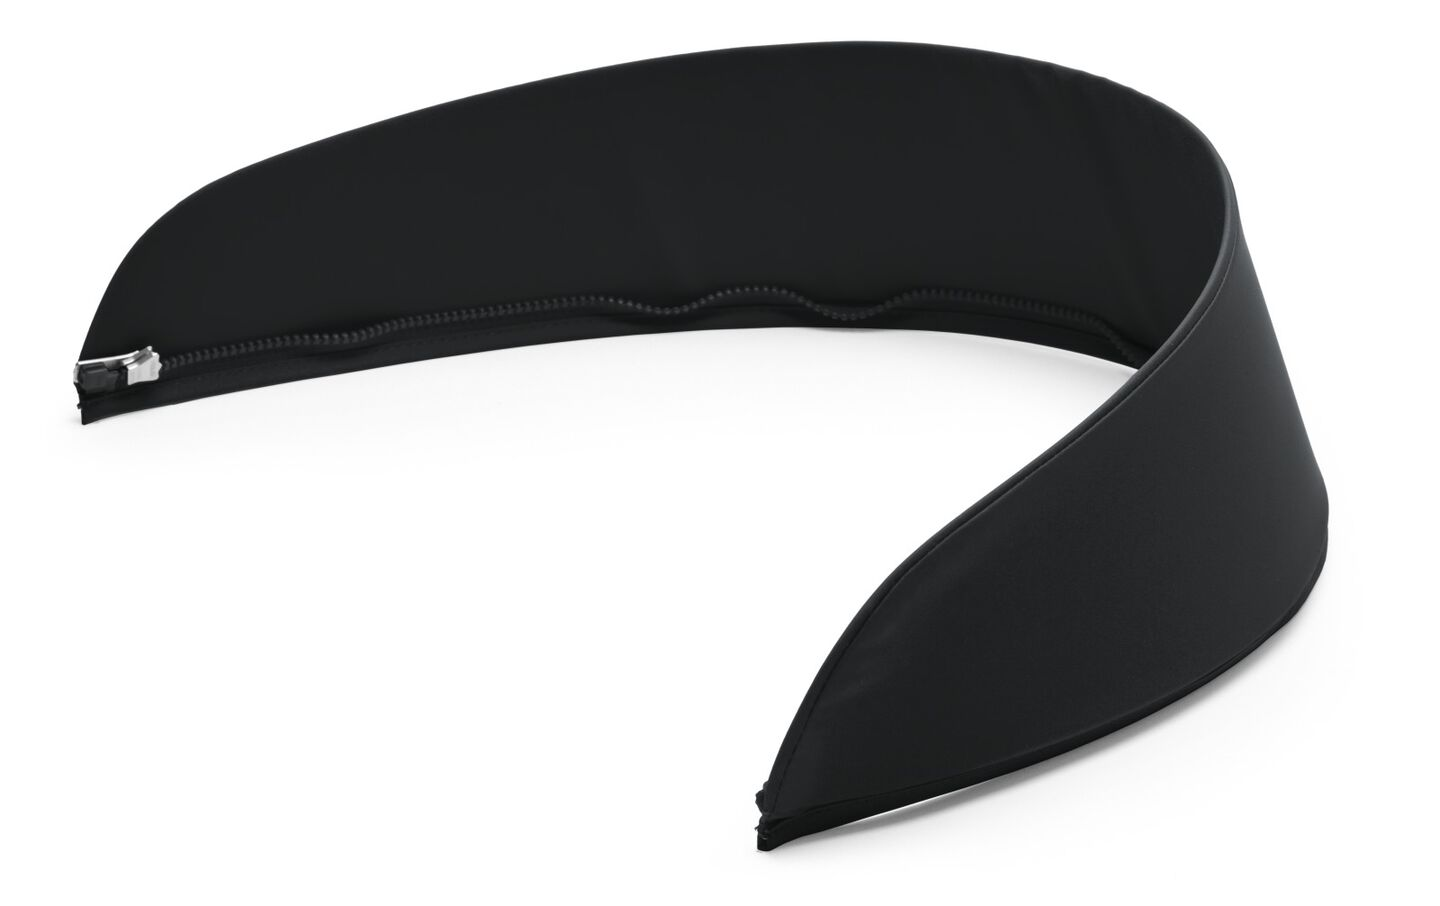 Stokke® Stroller Seat spare part. 184115 Stroller Visor for Hood, Black.